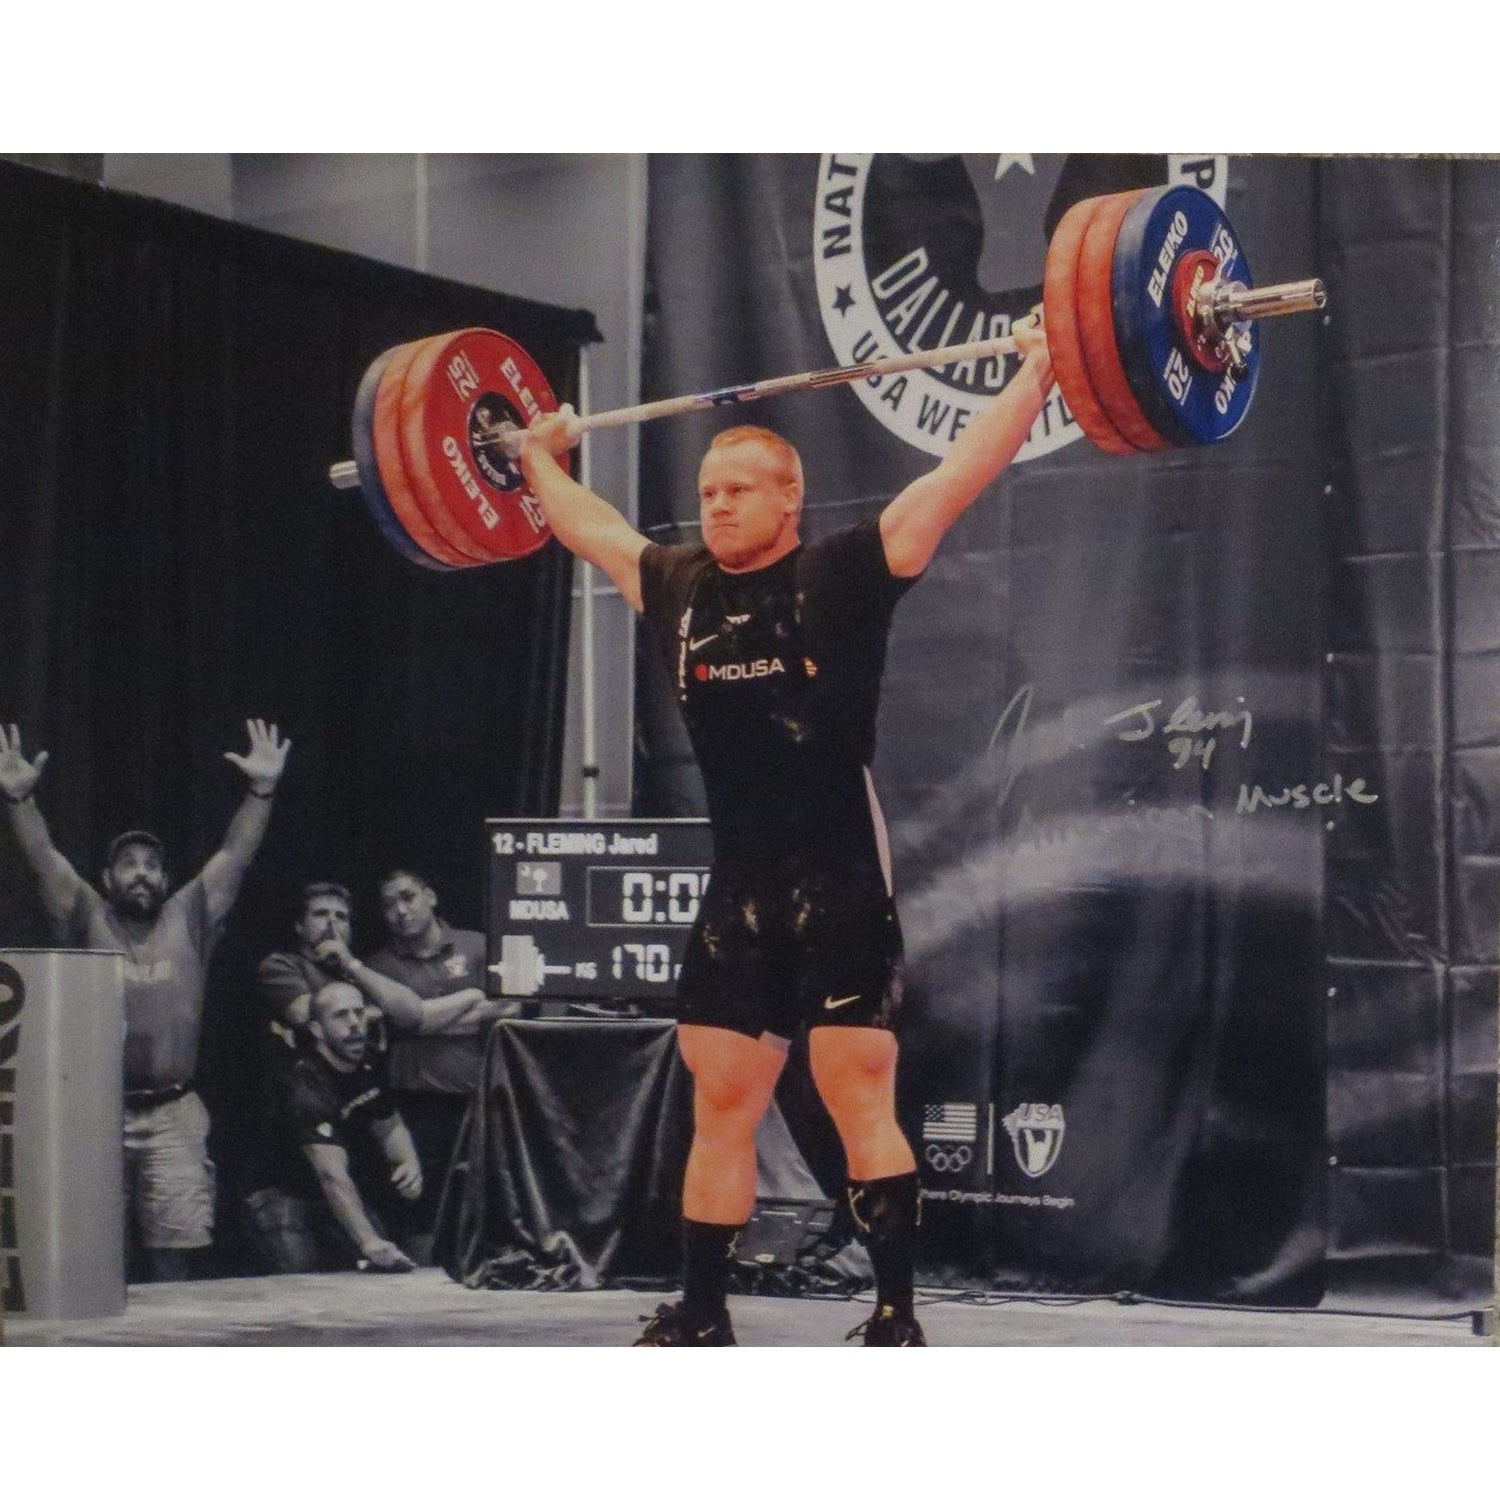 Jared Fleming Autographed USA Weightlifting American Record 170 Snatch Signed 16x20 Photo 10-Powers Sports Memorabilia